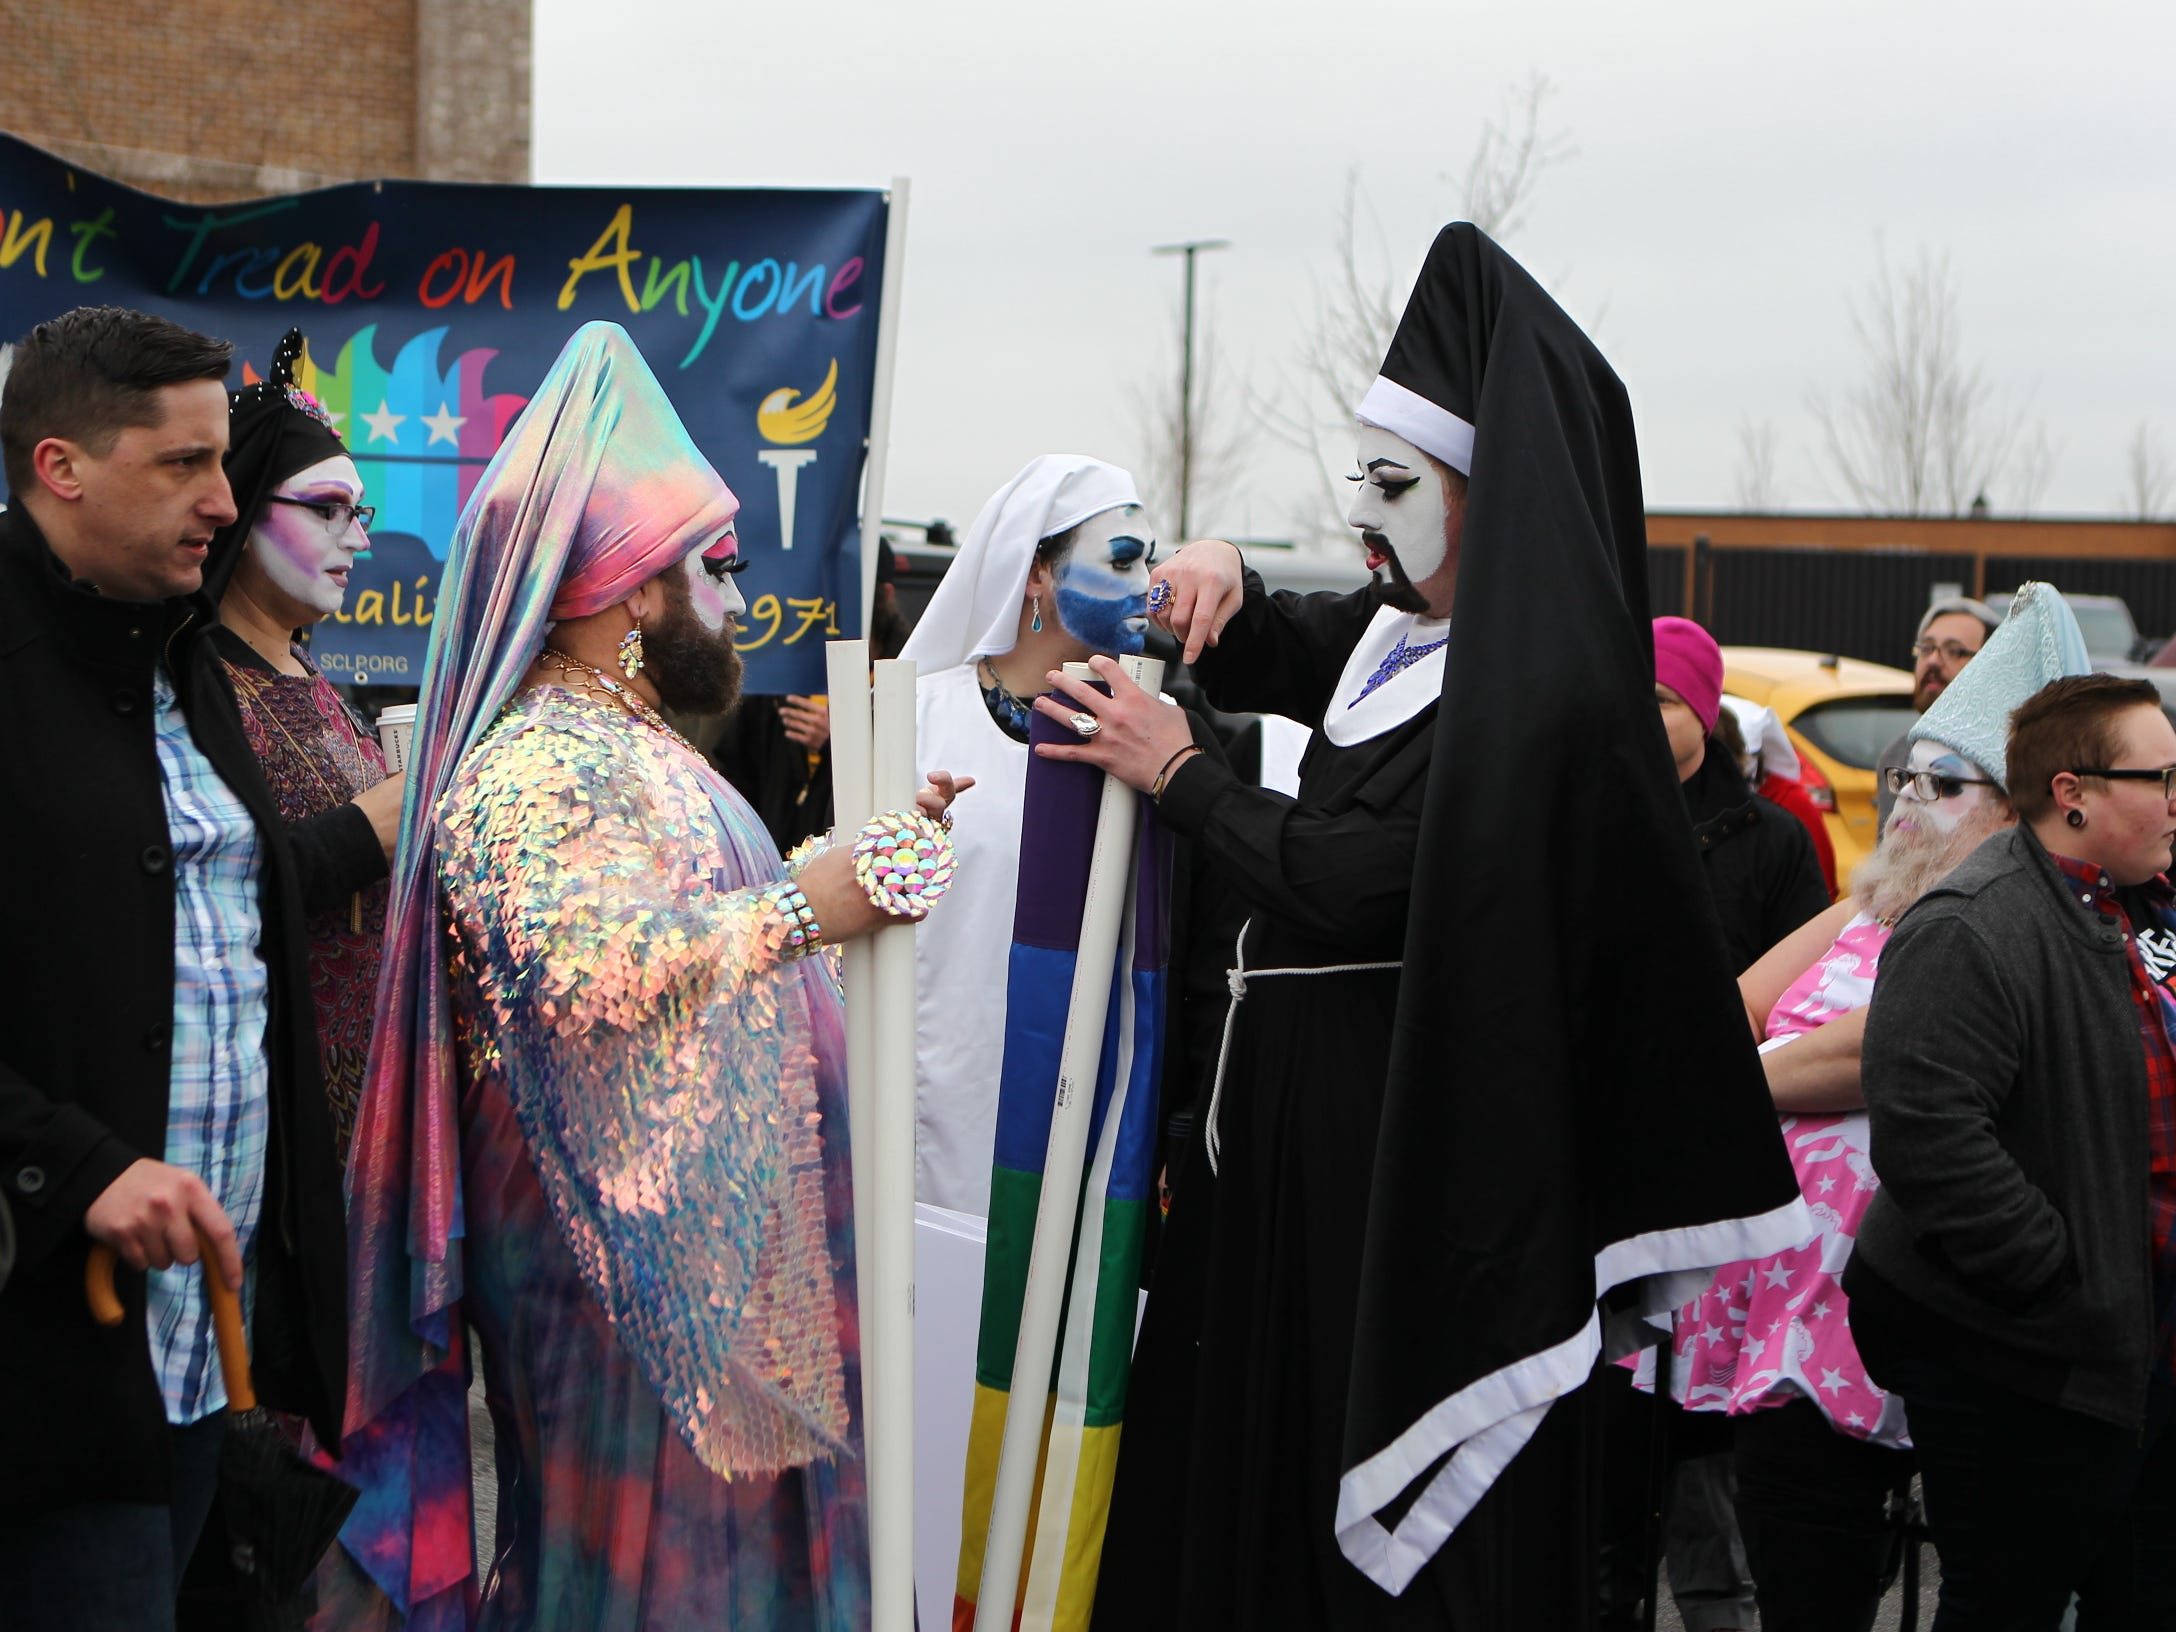 Two drag queens distribute rainbow flags in support of the Drag Queen story hour at Five Forks library on Sunday, Feb. 17, 2019.